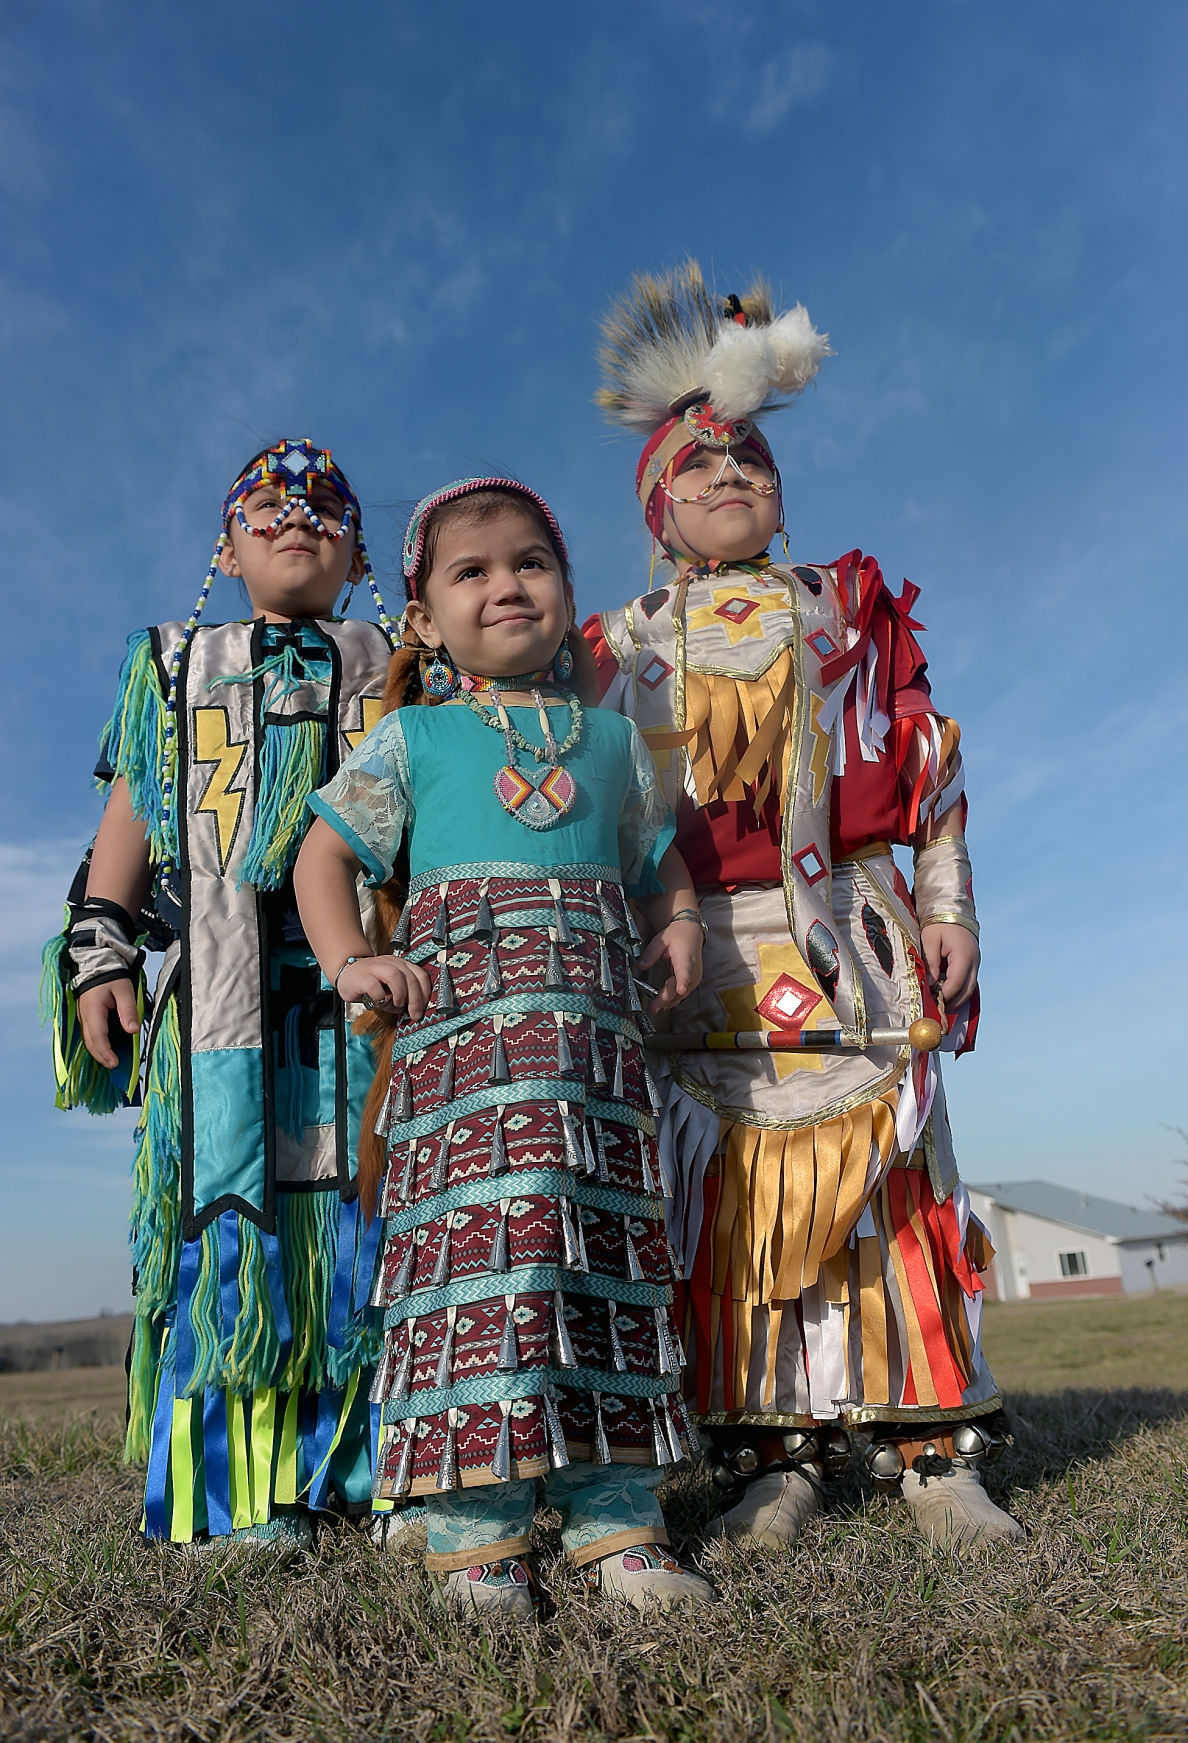 From left, Naash-Niish Garza 6, Shi-bah-sii-kwe Garza 3 and Komoah Garza 7, display handmade regalia. The siblings are a third generation to attend Kickapoo Nation School in Powhattan. They live on the reservation with their parents. Jessica Stewart, St.